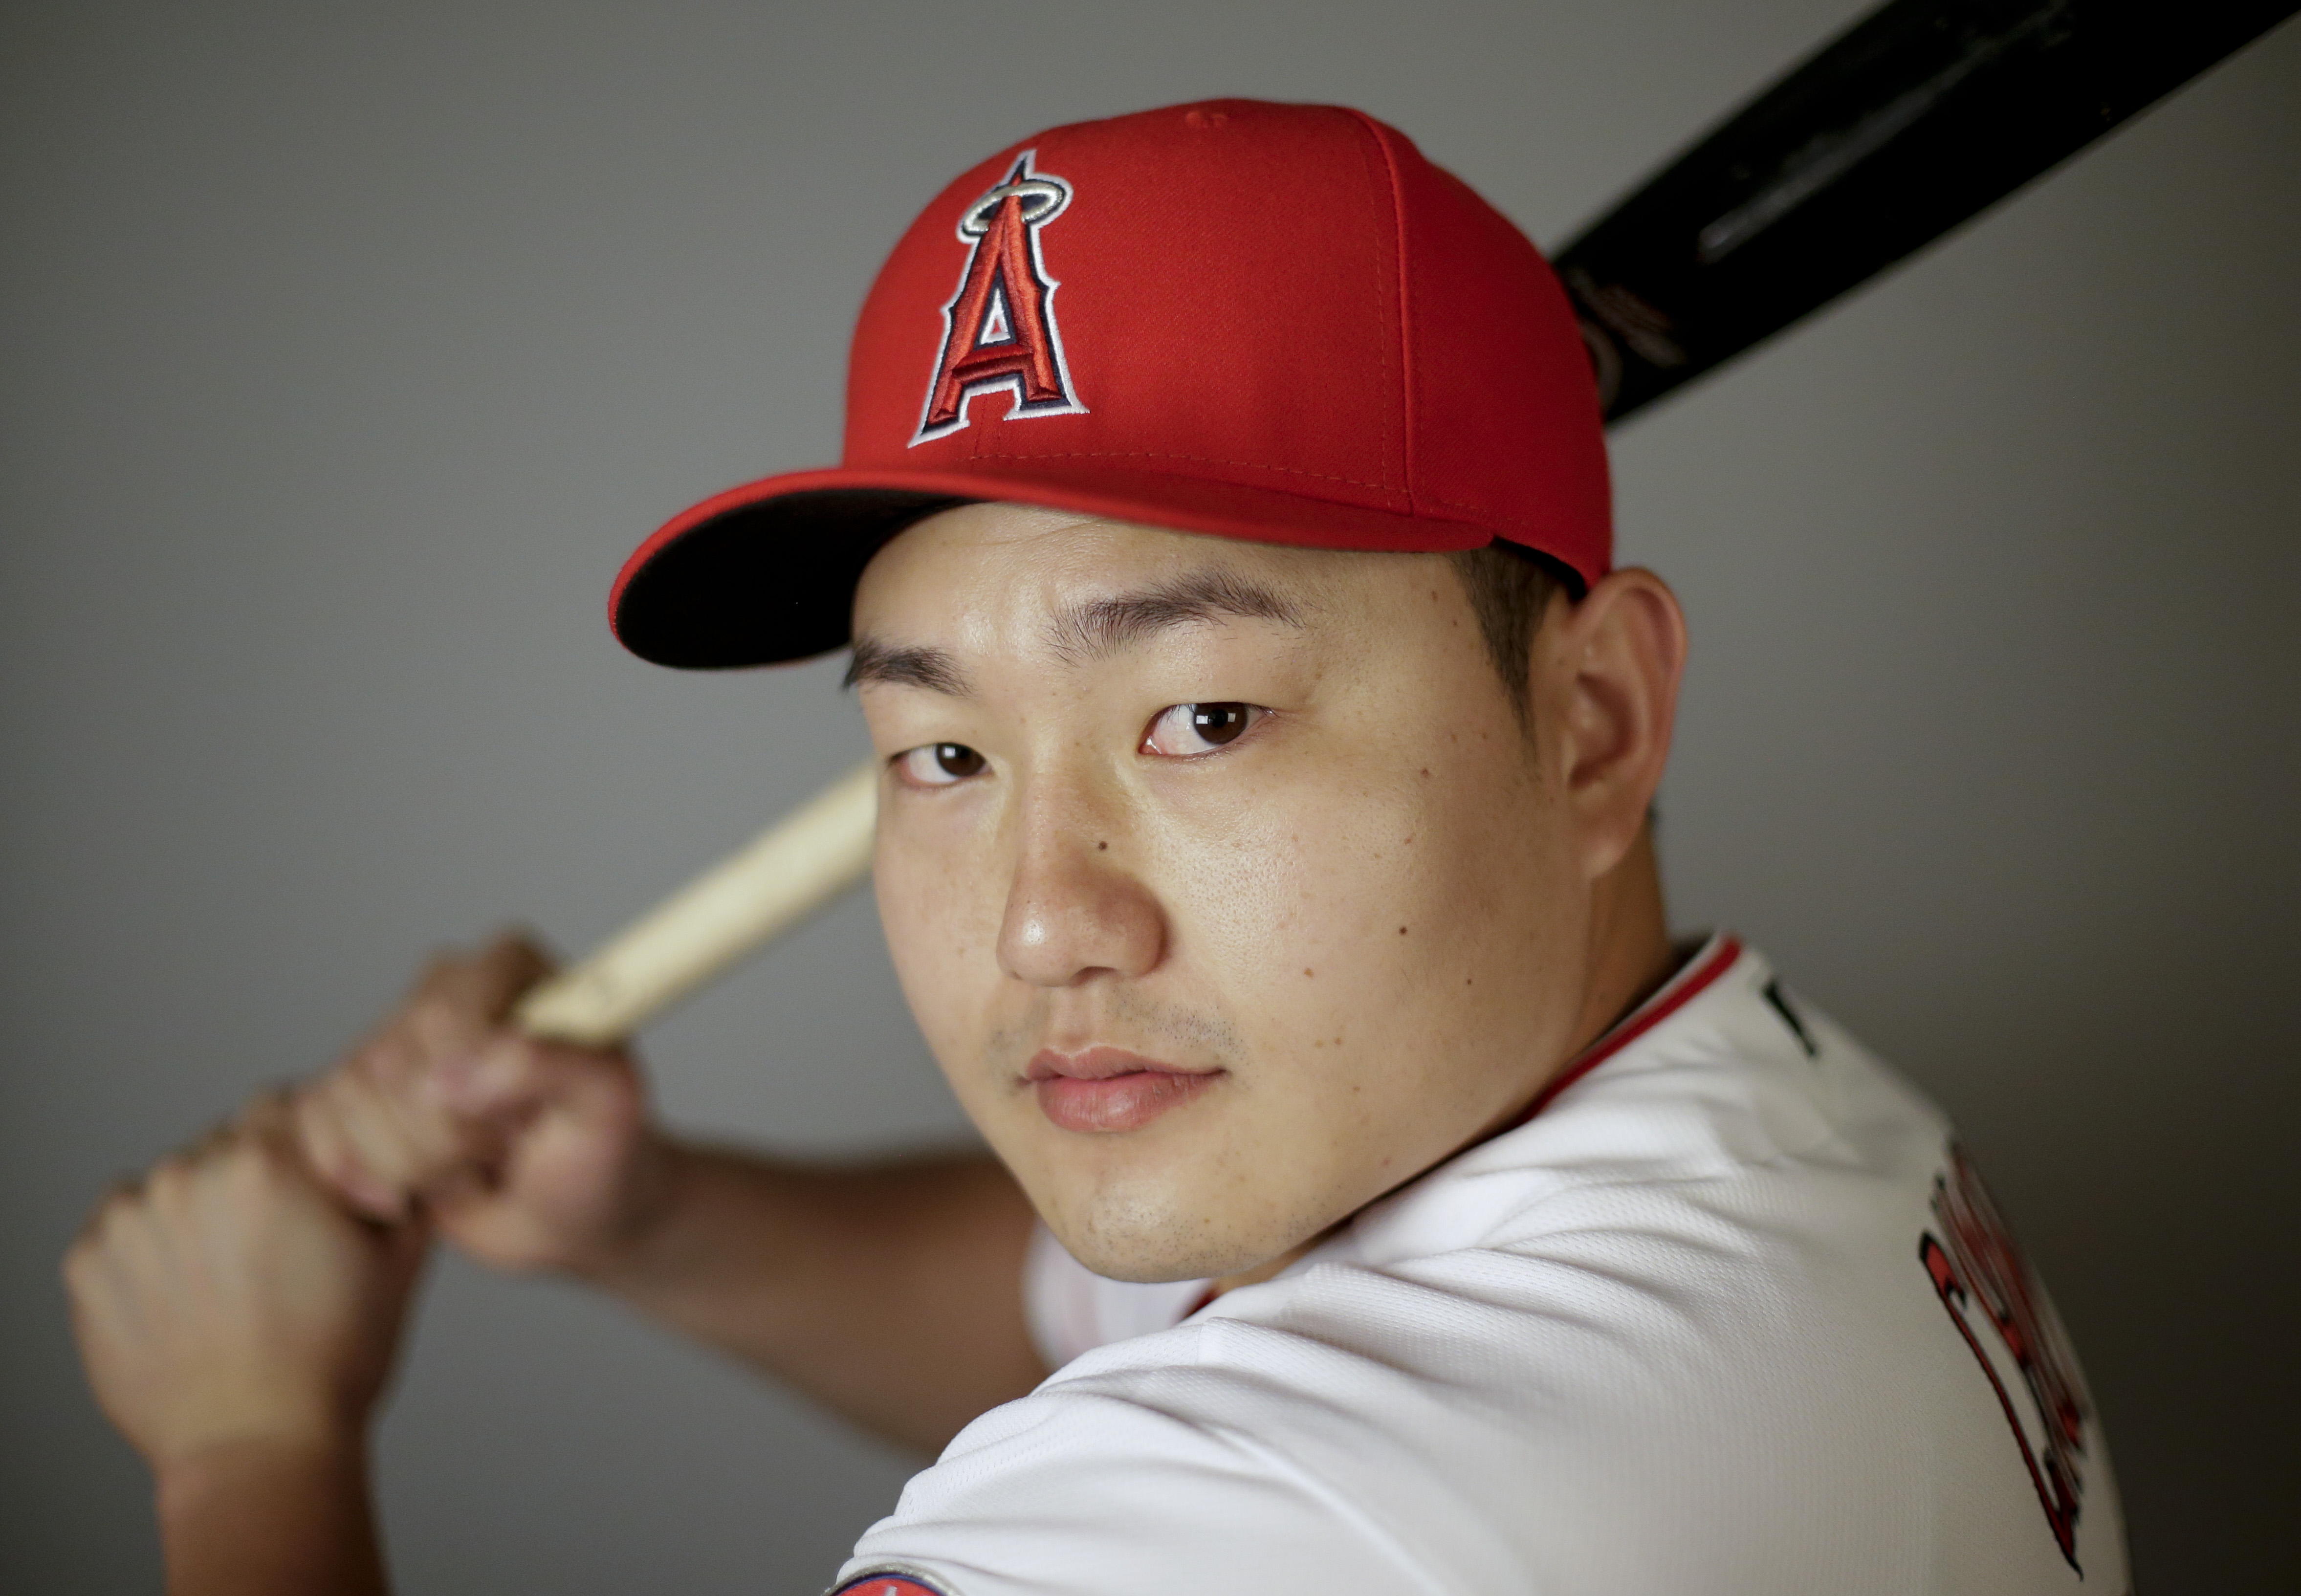 FILE - In this Feb. 26, 2016, file photo,  Ji-Man Choi of the Los Angeles Angels baseball team, poses in Tempe, Ariz. Ji-Man Choi didn't become a swtich-hitter until midway through last season. His remarkable mid-career adjustment could make him part of t